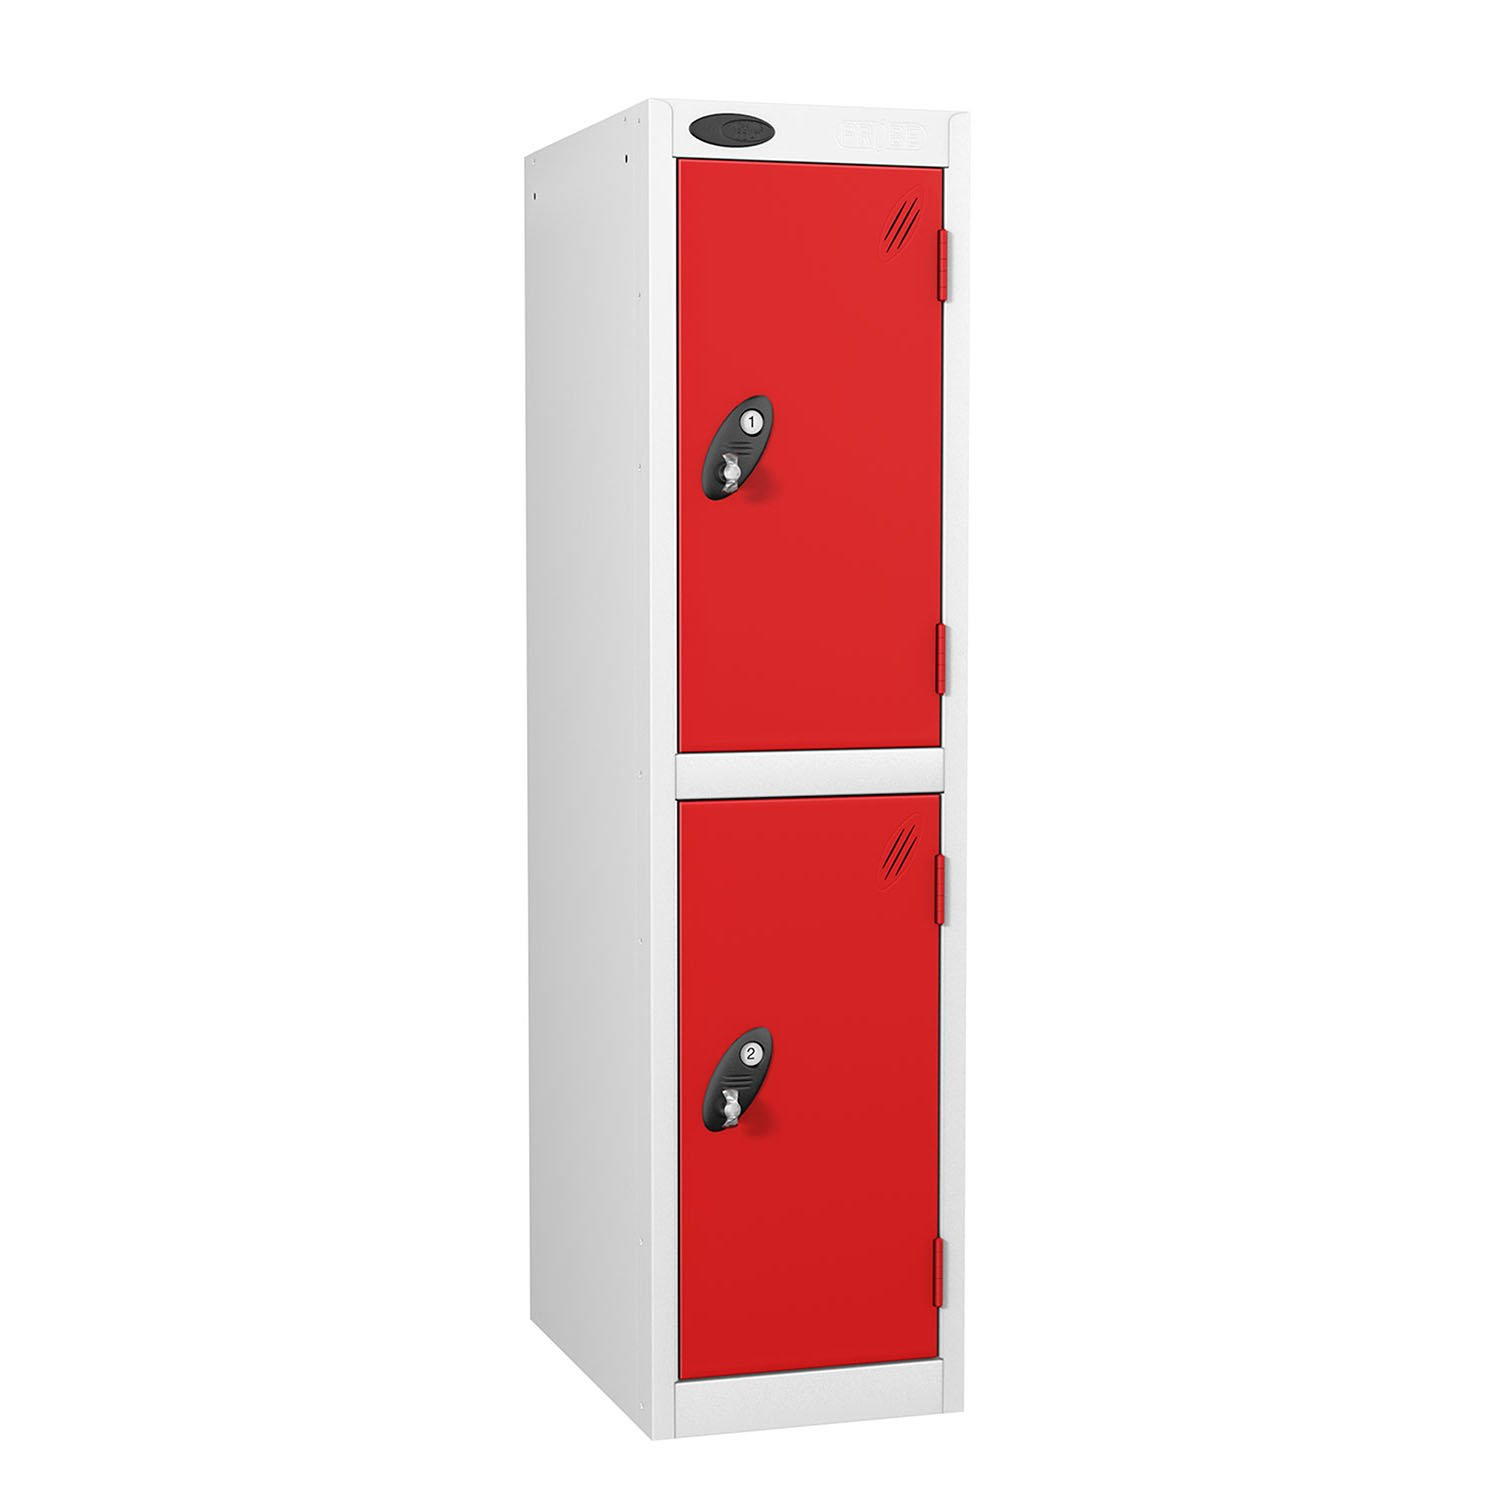 Probe 2 doors low locker in red colour